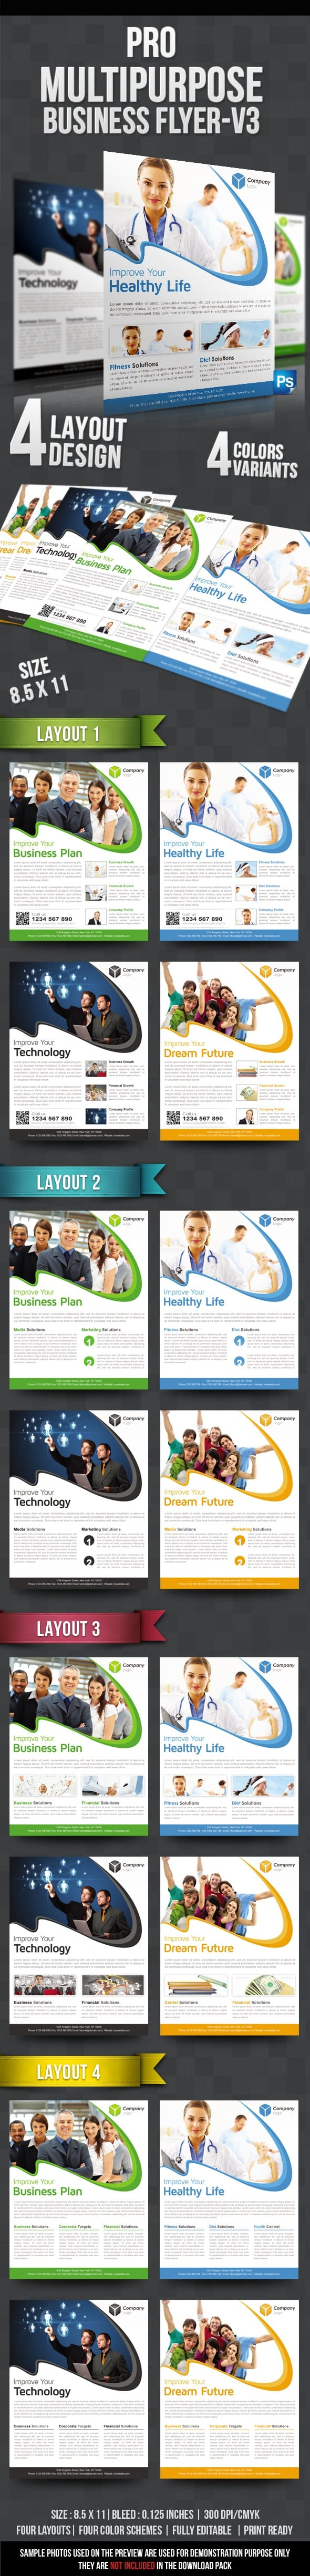 Pro-Multipurpose-Business-Flyer_v3_mock